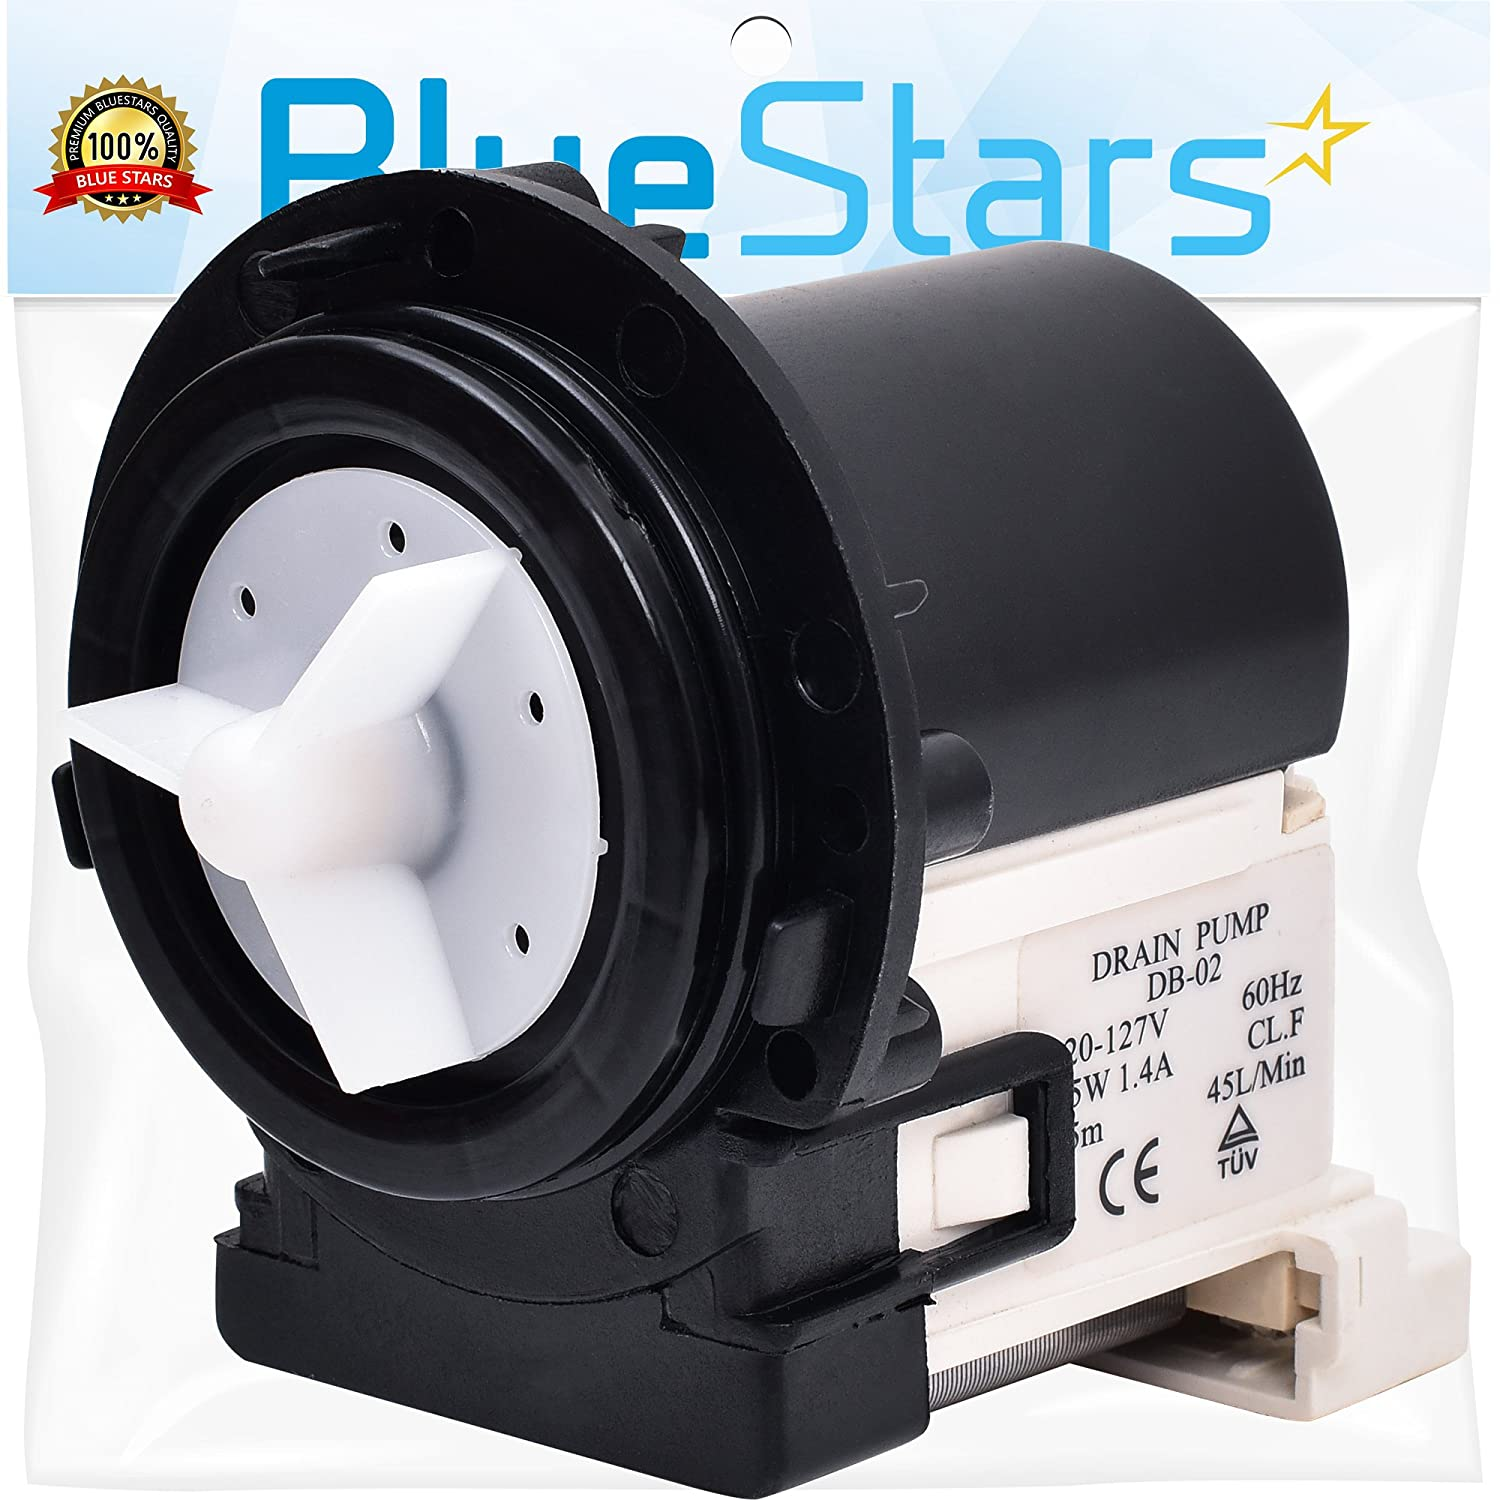 Ultra Durable 4681EA2001T Washer Drain Pump Replacement part by Blue Stars- Exact Fit for LG Kenmore Washer- Replaces 2003273 4681EA1007D 4681EA1007G